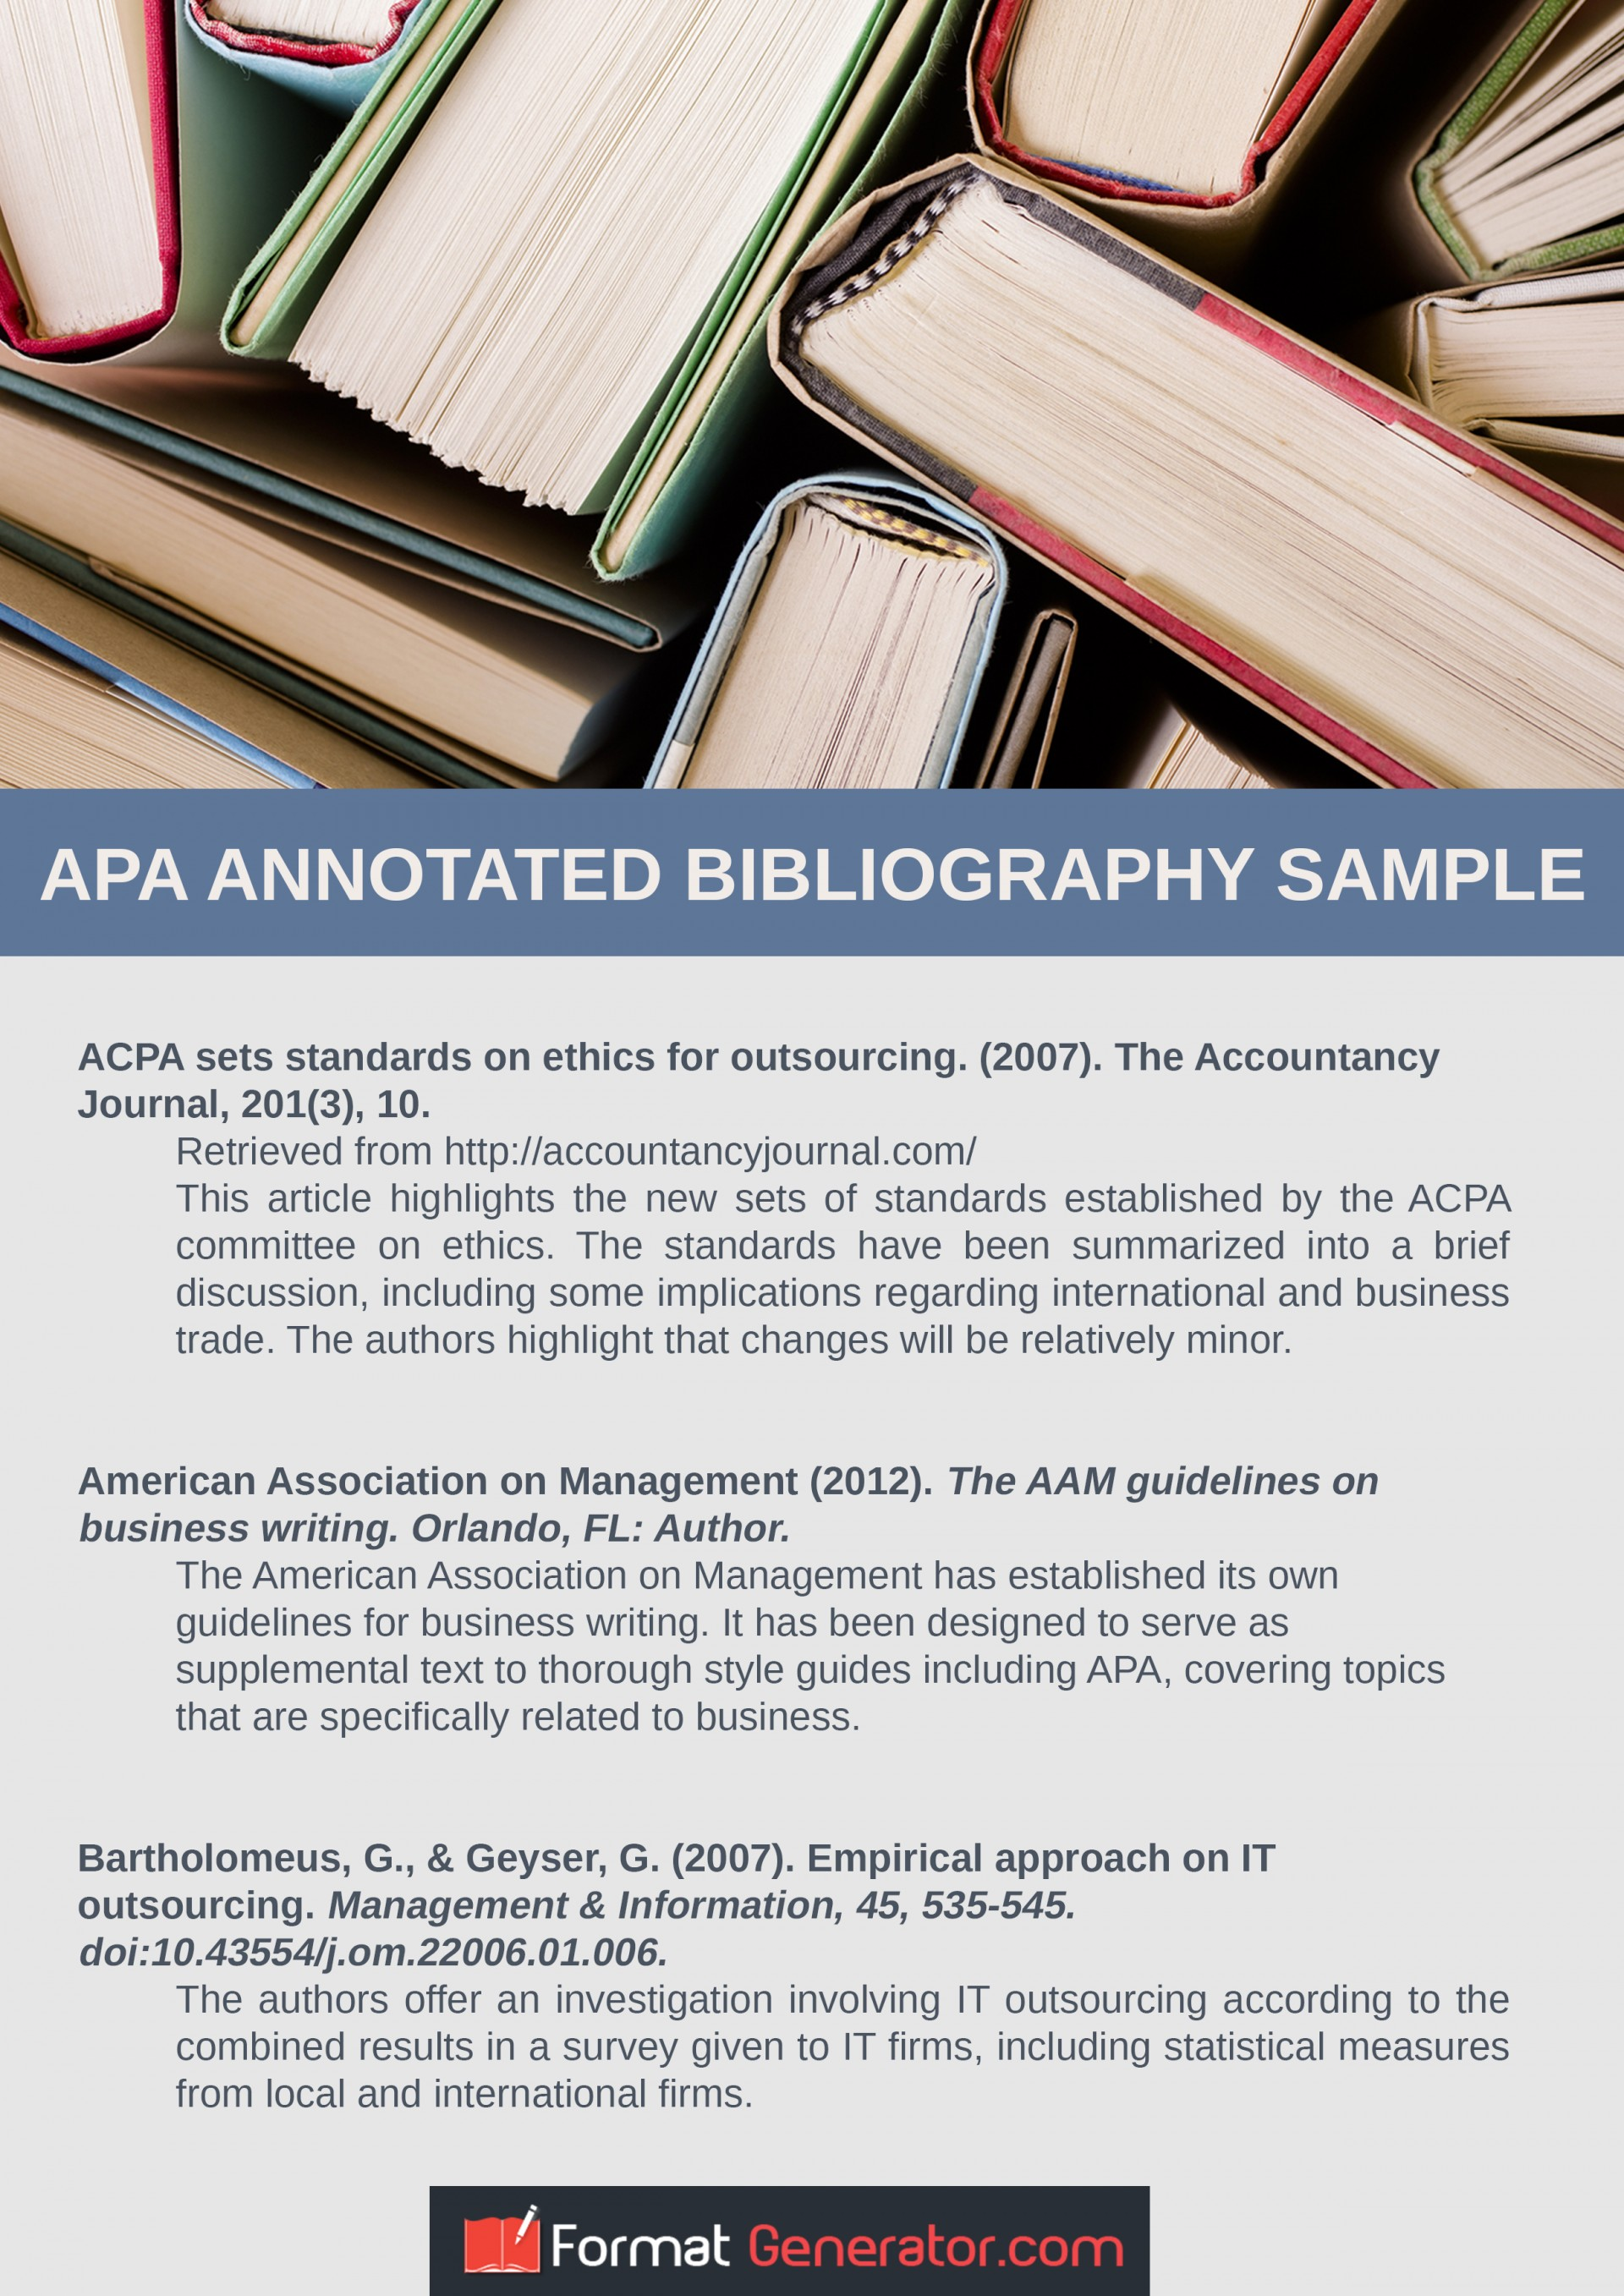 023 Free Online Research Paper Generator Apa Annotated Bibliography Outstanding Outline 1920